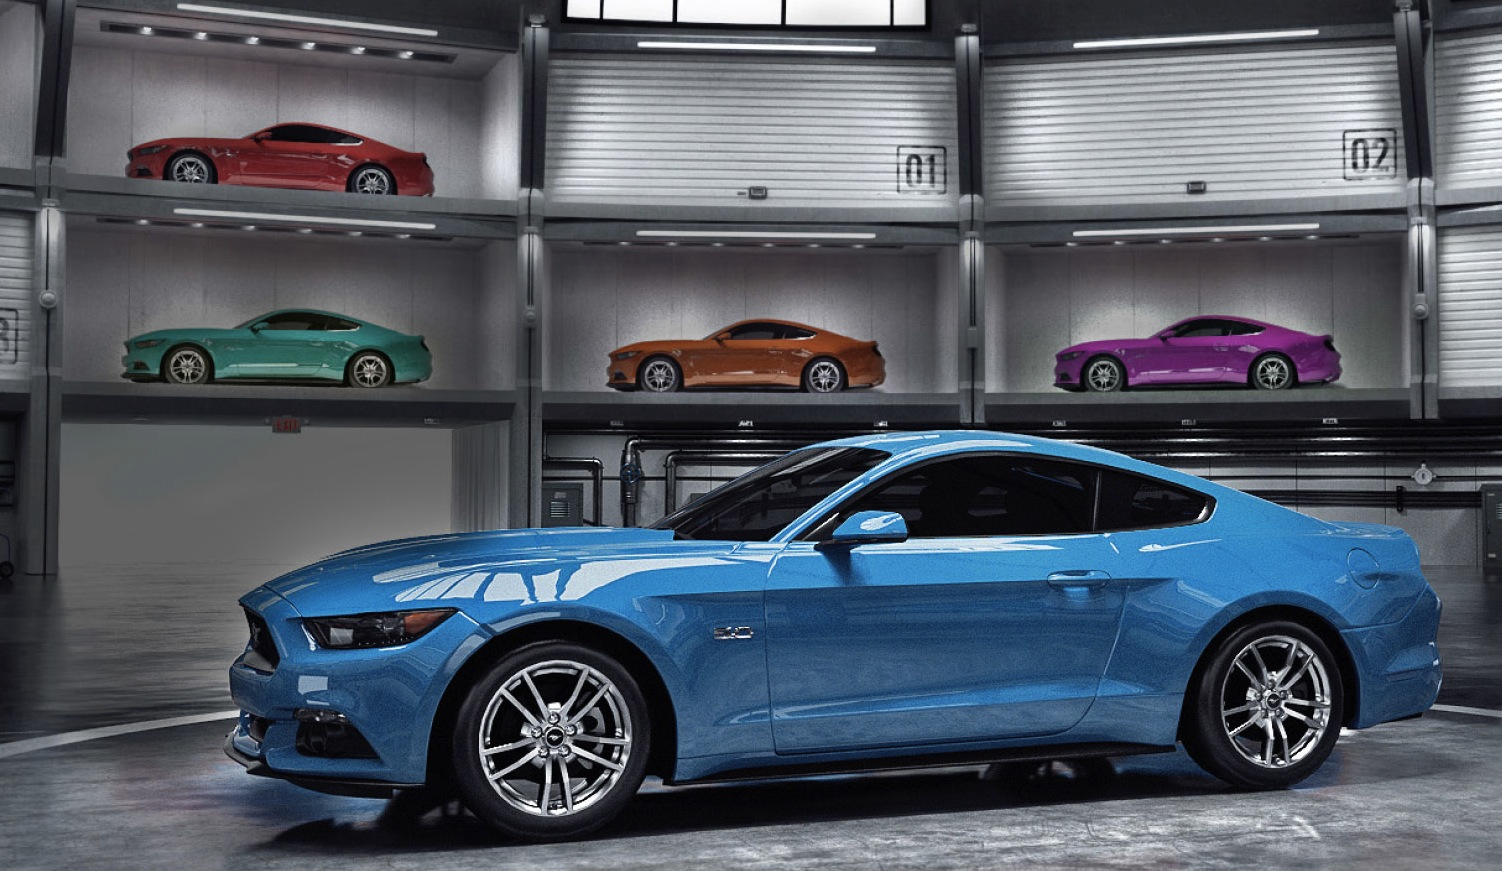 Customize the Mustang of your dreams with Ford's new app